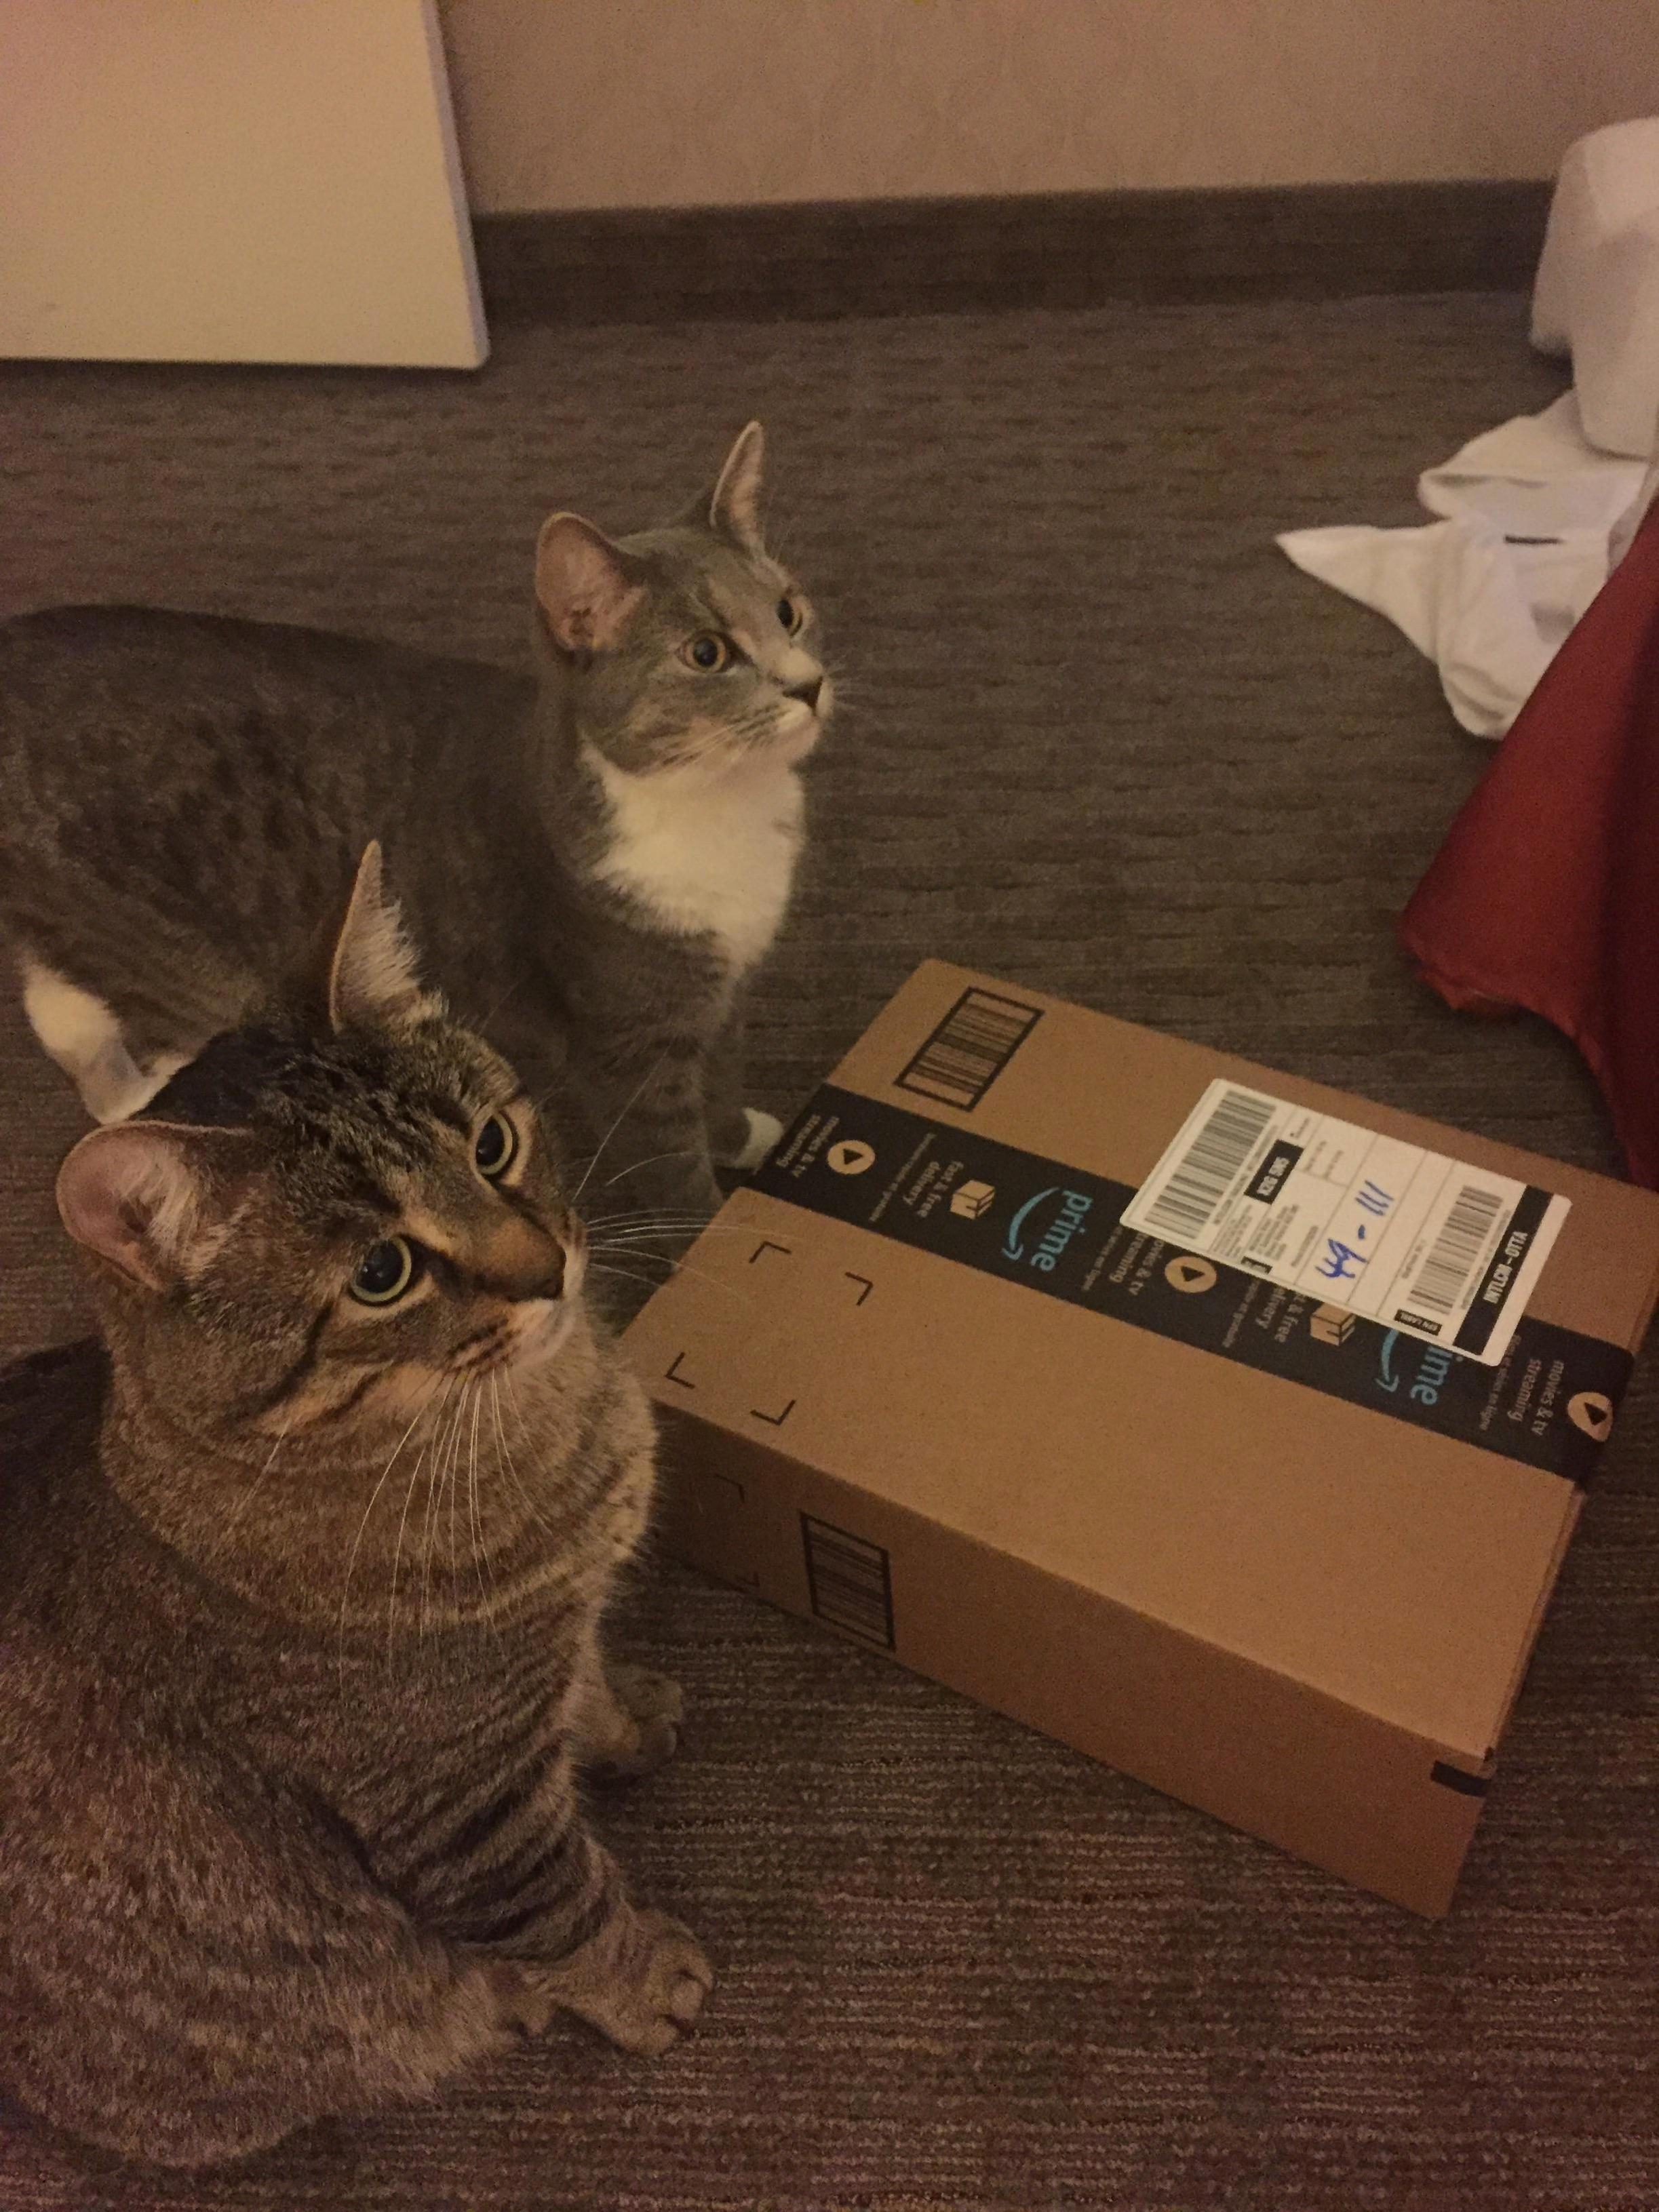 Today is my husbands birthday. miguel and misty eagerly waited to give him his gift this morning (even if it was just to get the box)